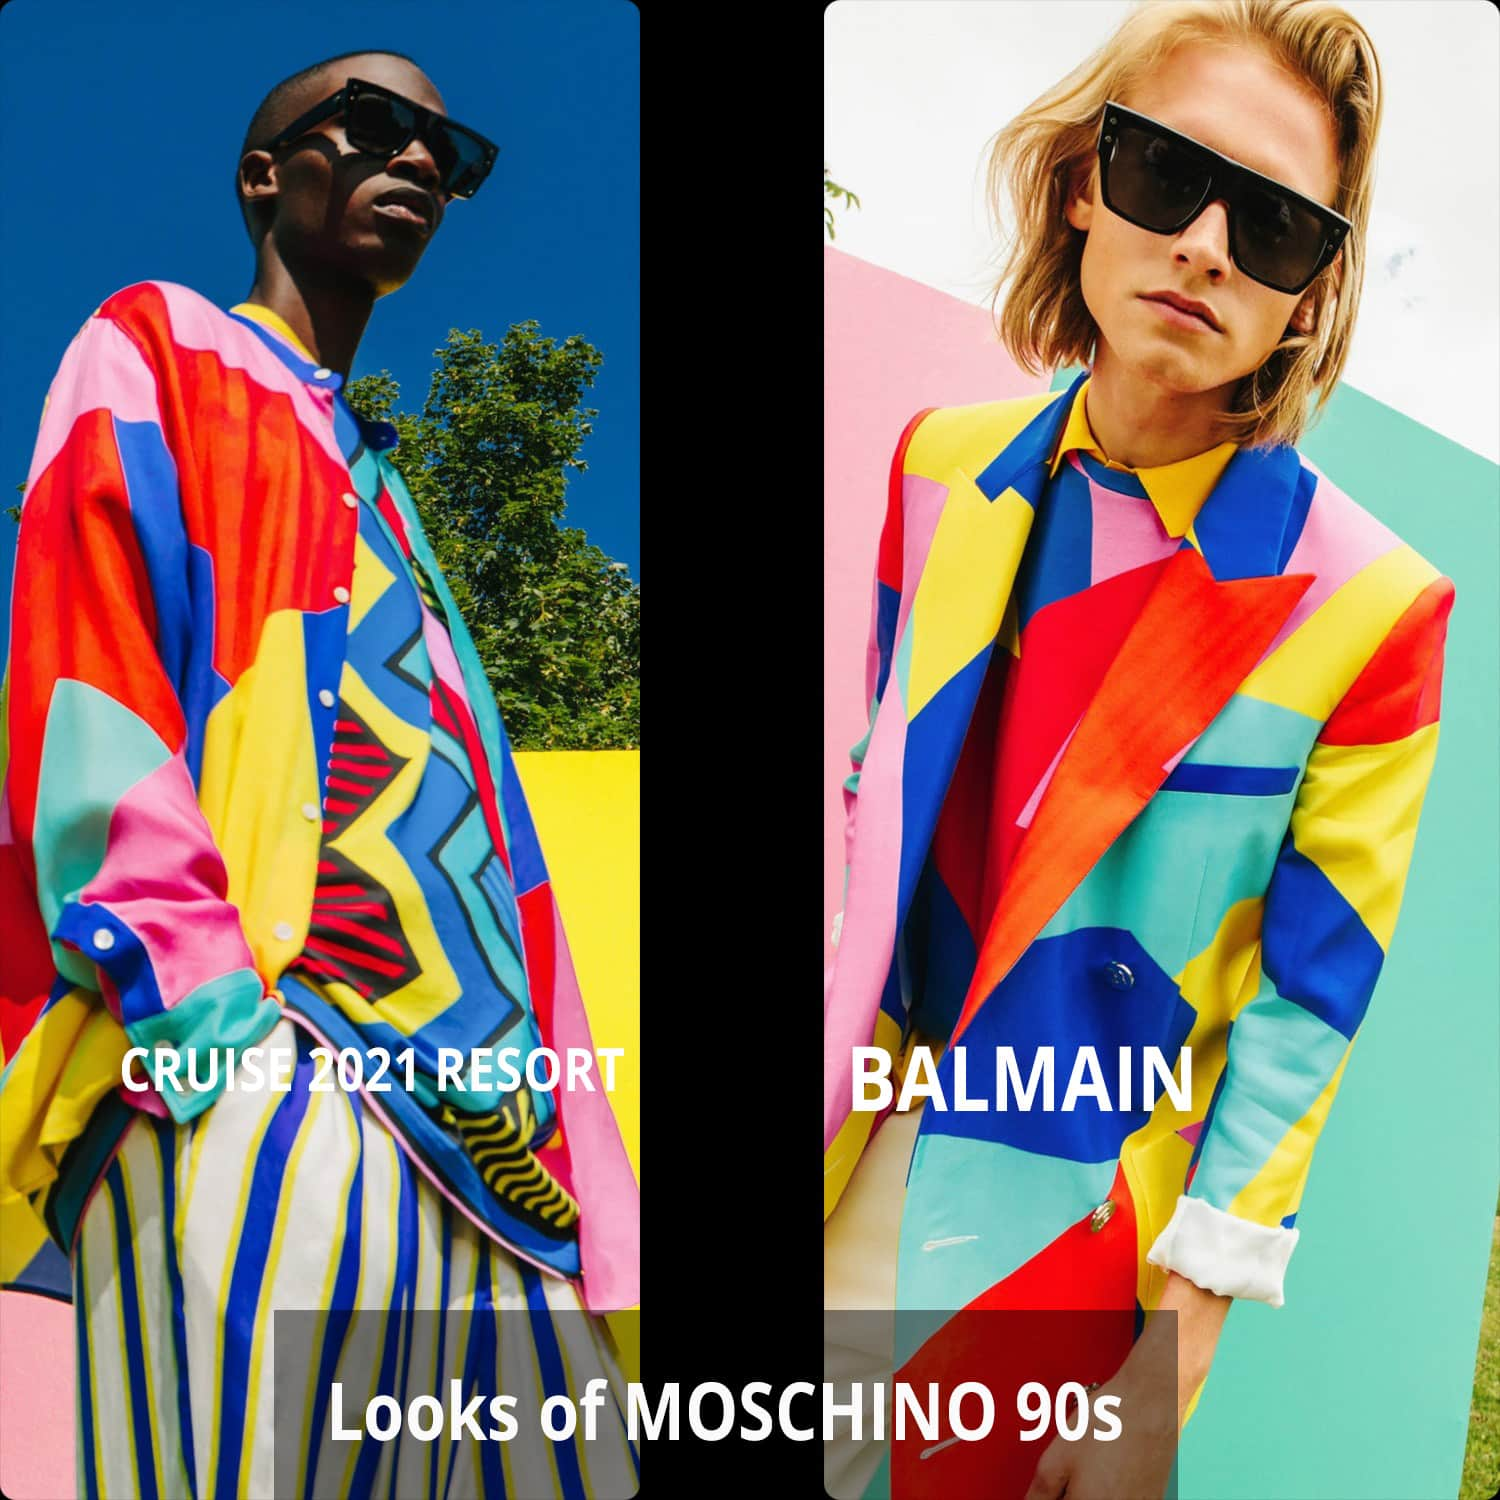 Balmain Cruise 2021 Resort vs MOSCHINO 90s